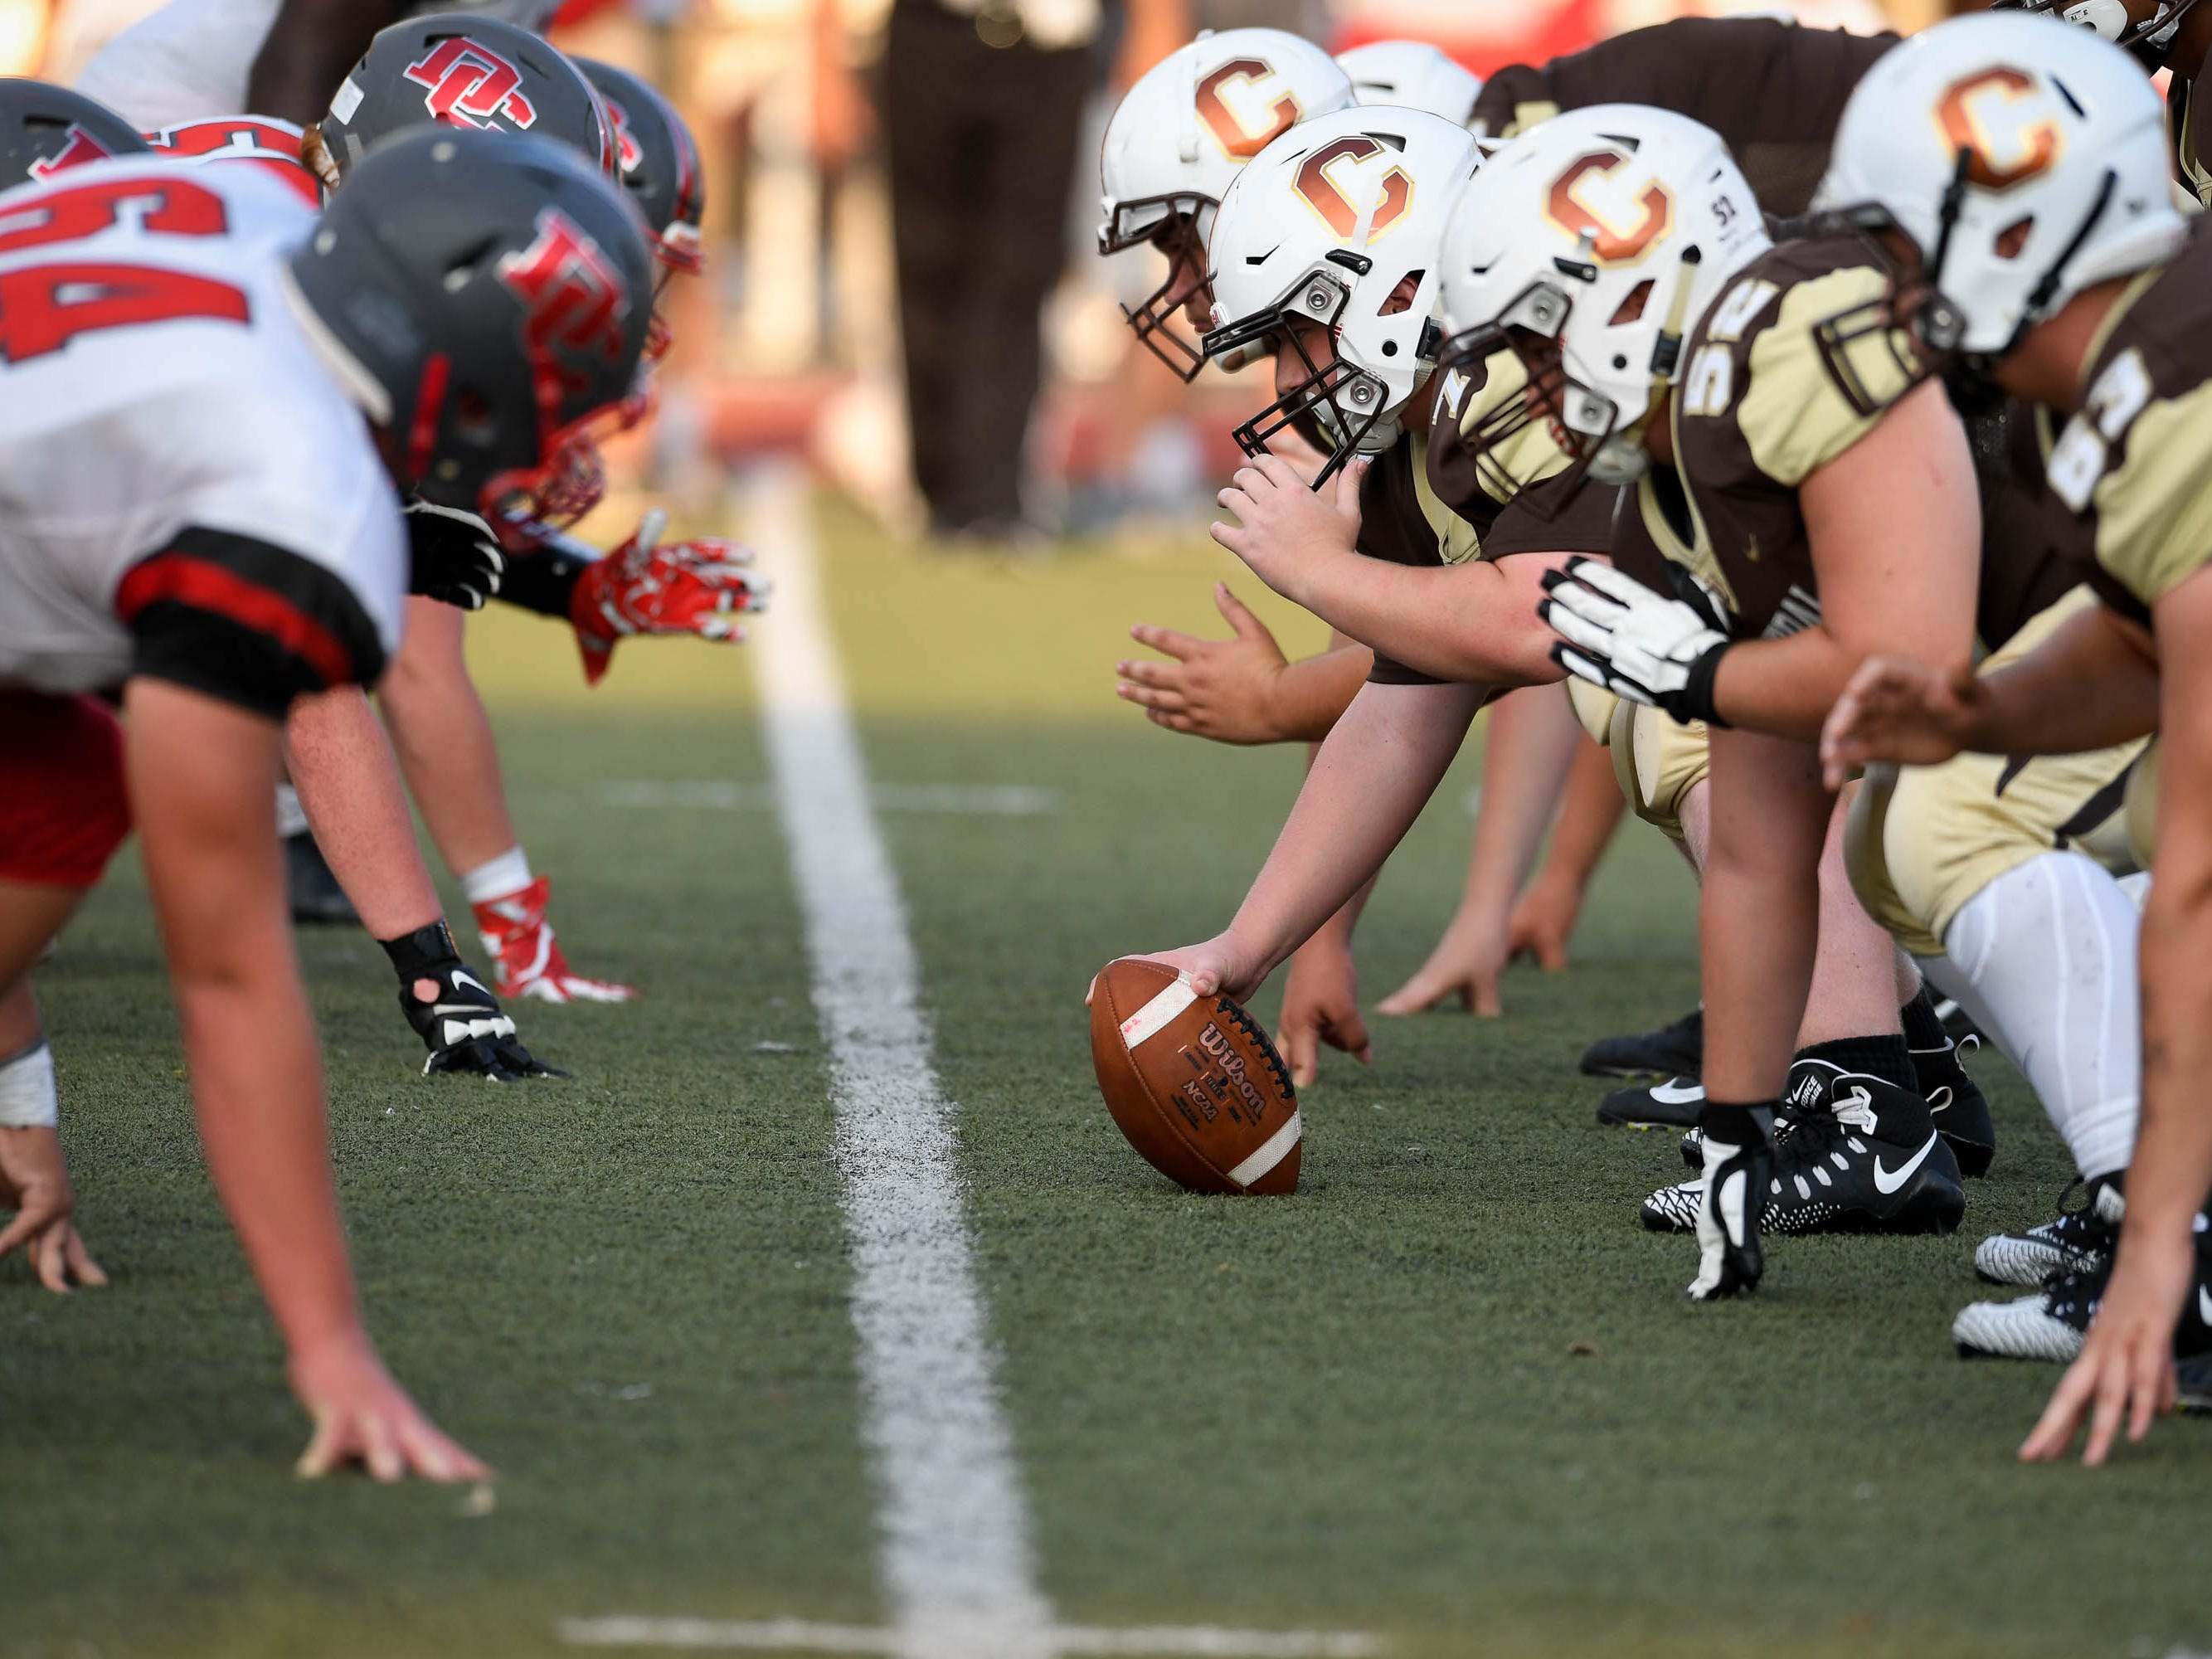 Central prepares to snap the ball as the Daviess County Panthers play the Evansville Central Bears at the Border Bowl played at Enlow Field in Evansville Saturday, August 25, 2018.